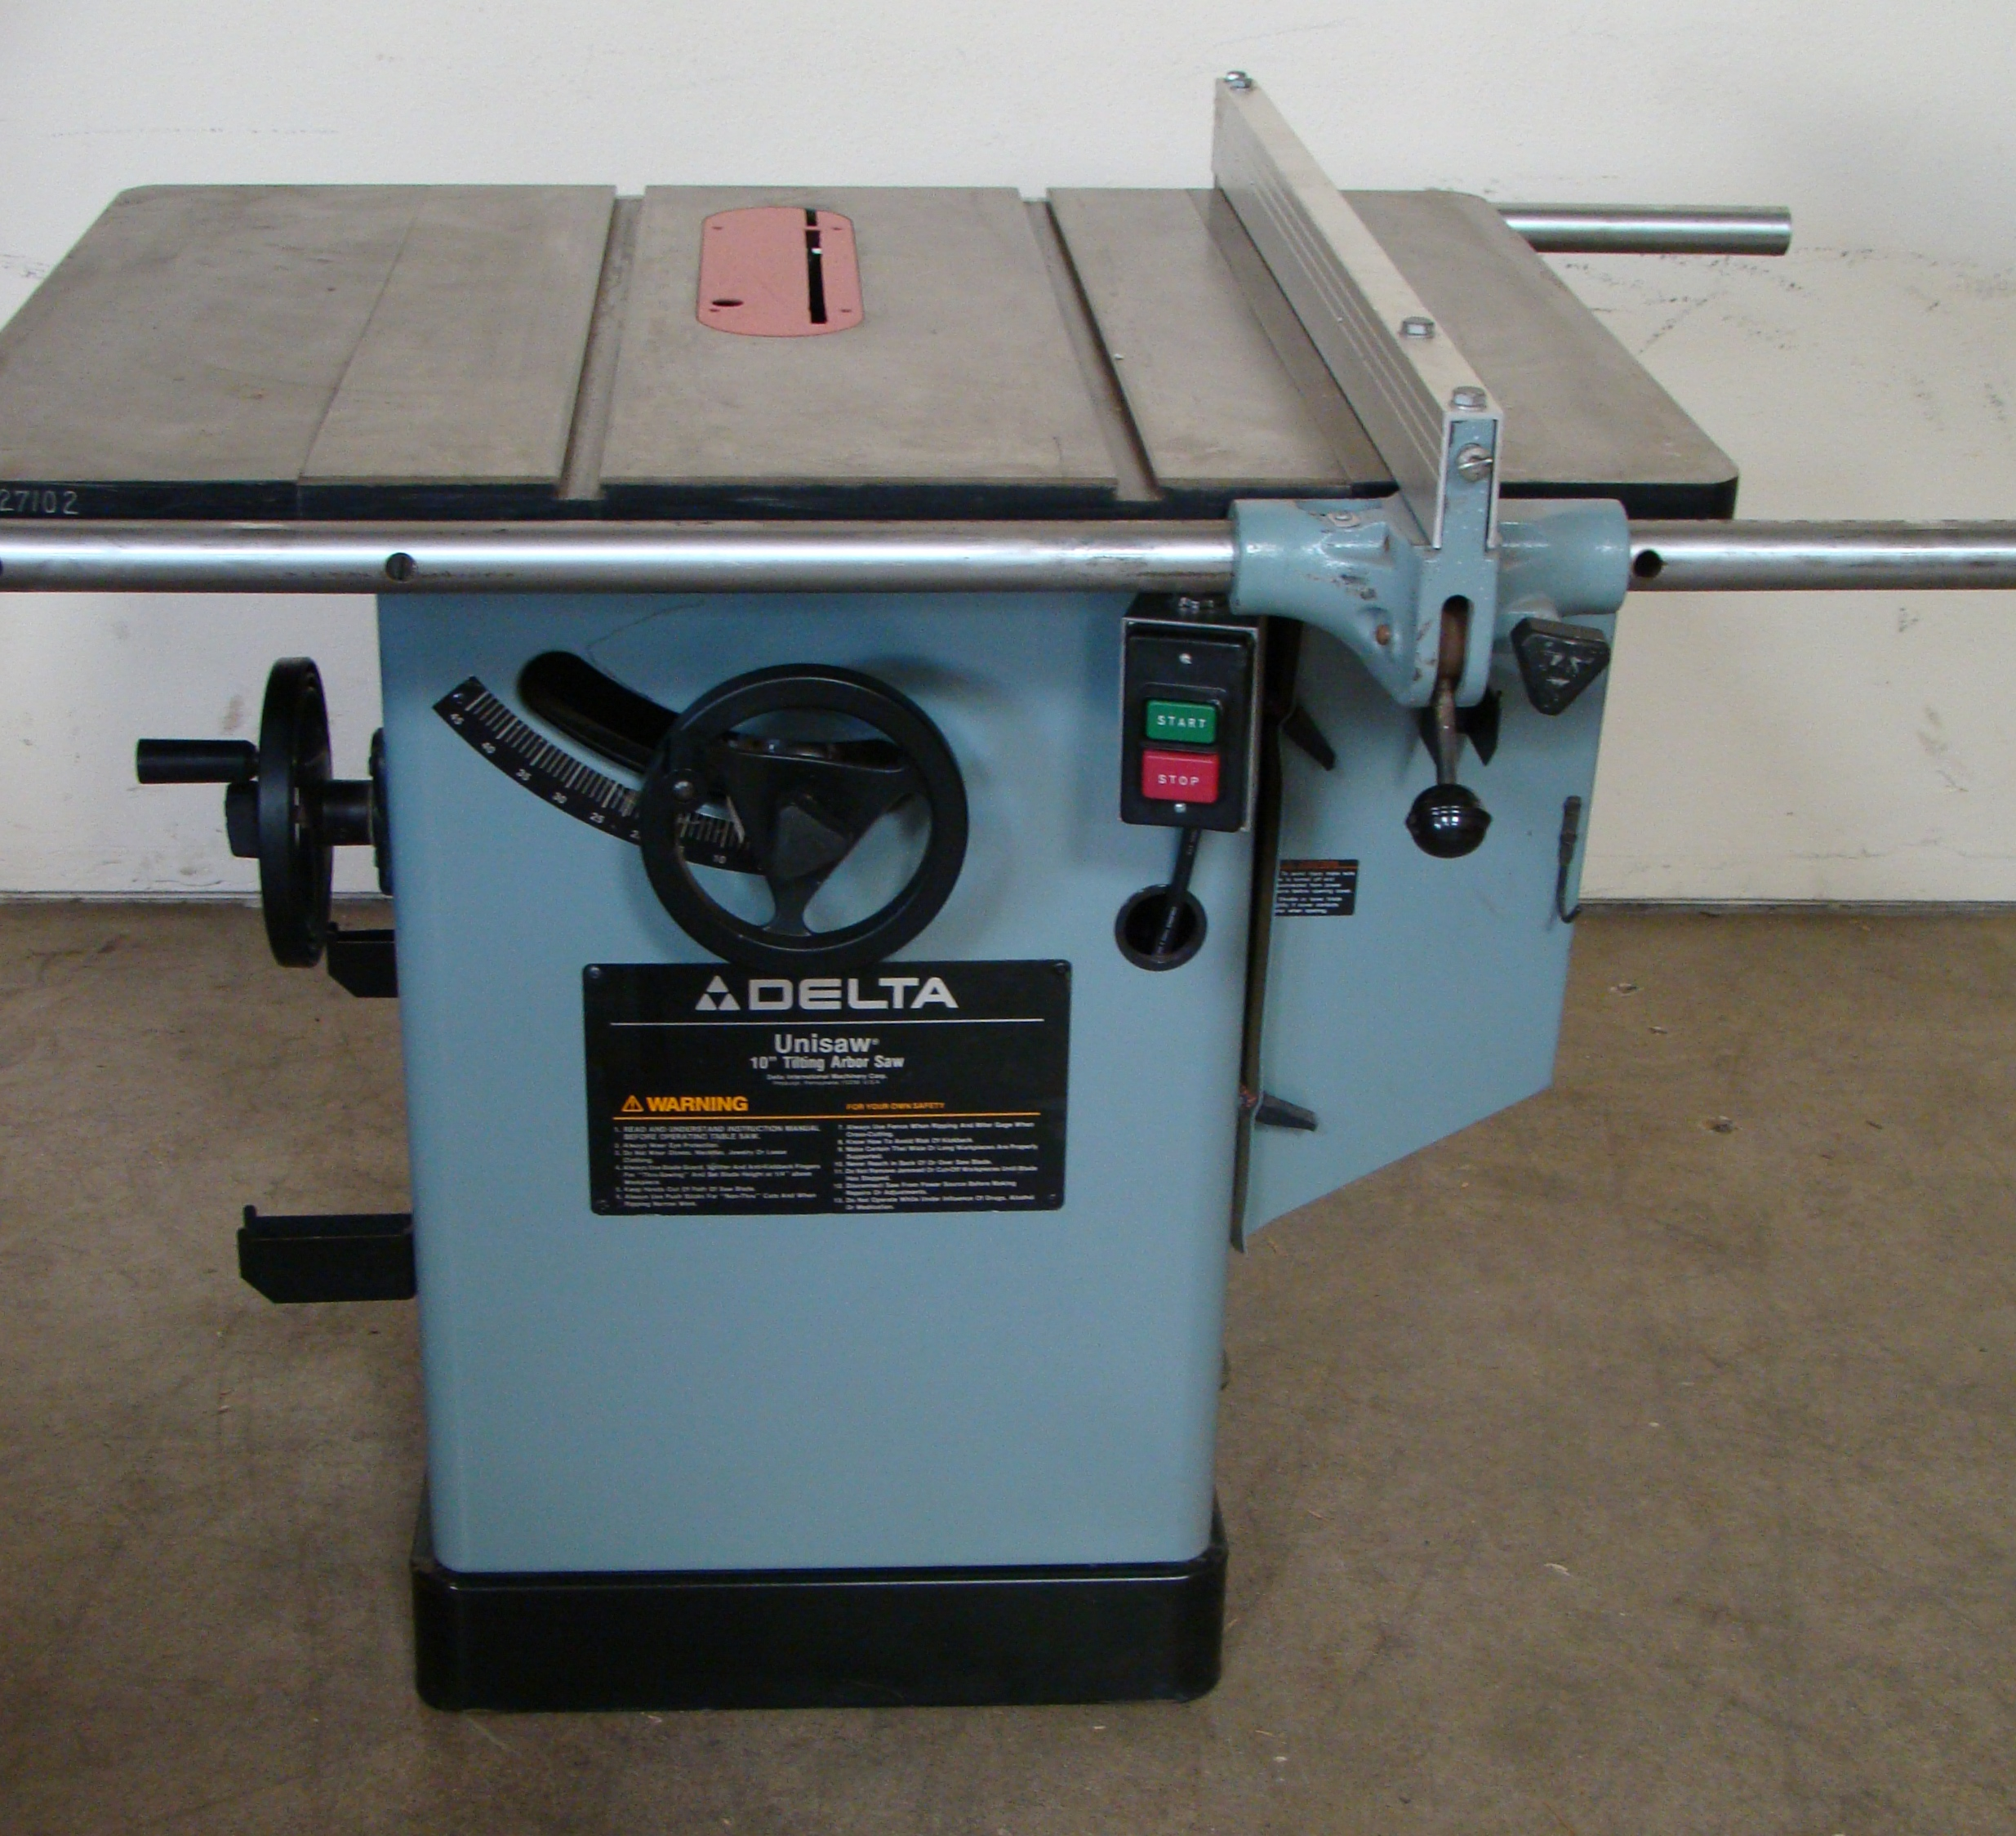 "Lot 49 - Delta Unisaw 10"" Tilting Arbor Table Saw 25"" Jet Lock Rails & Fence 5HP 220 Volt 3PH"